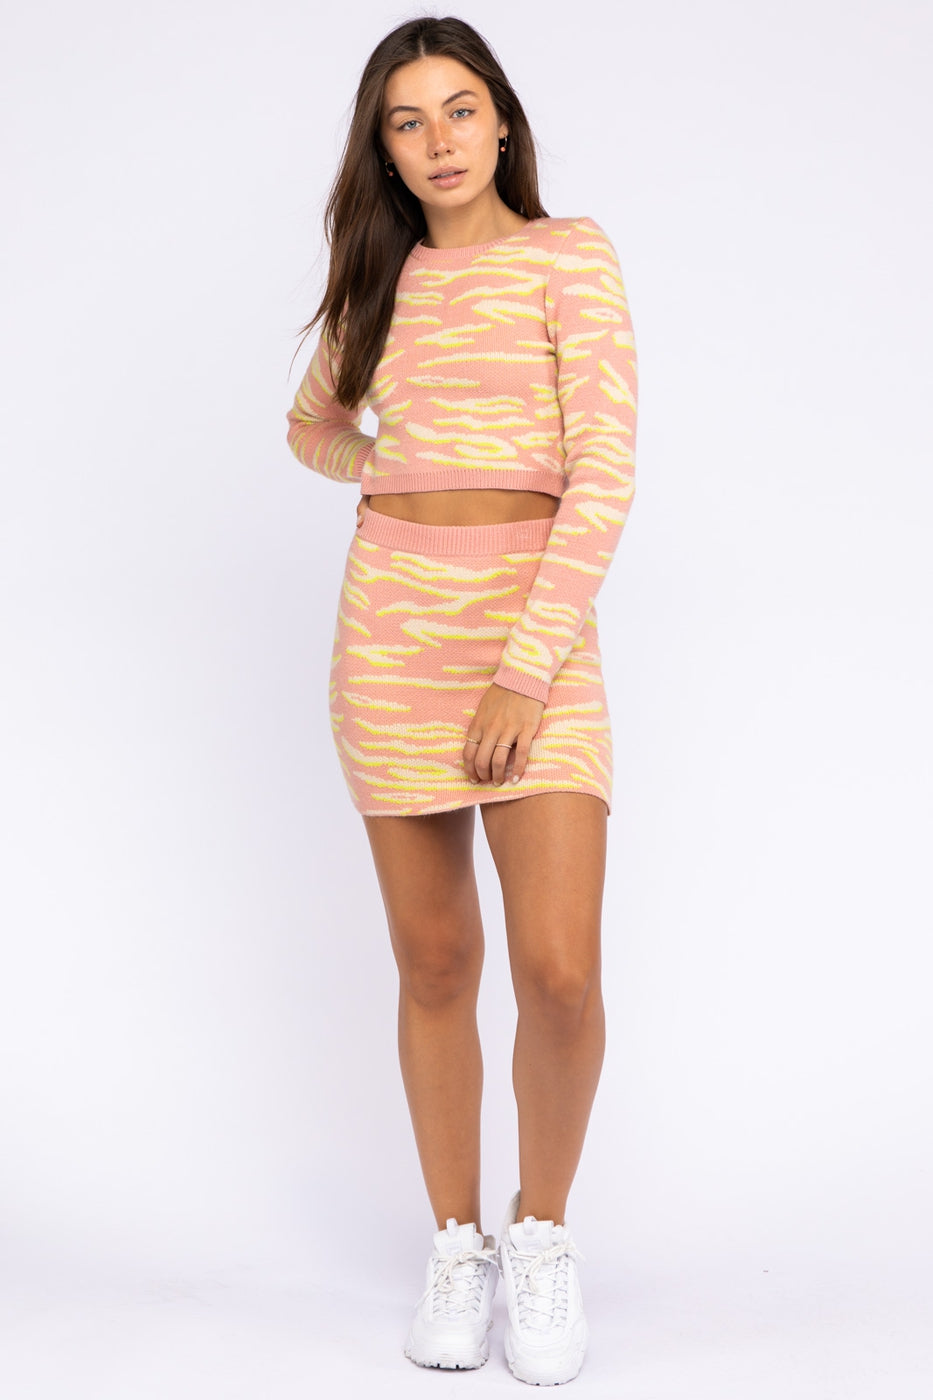 Animal Jacquard Knit Bodycon Mini Skirt In Baby Pink Siin Bees